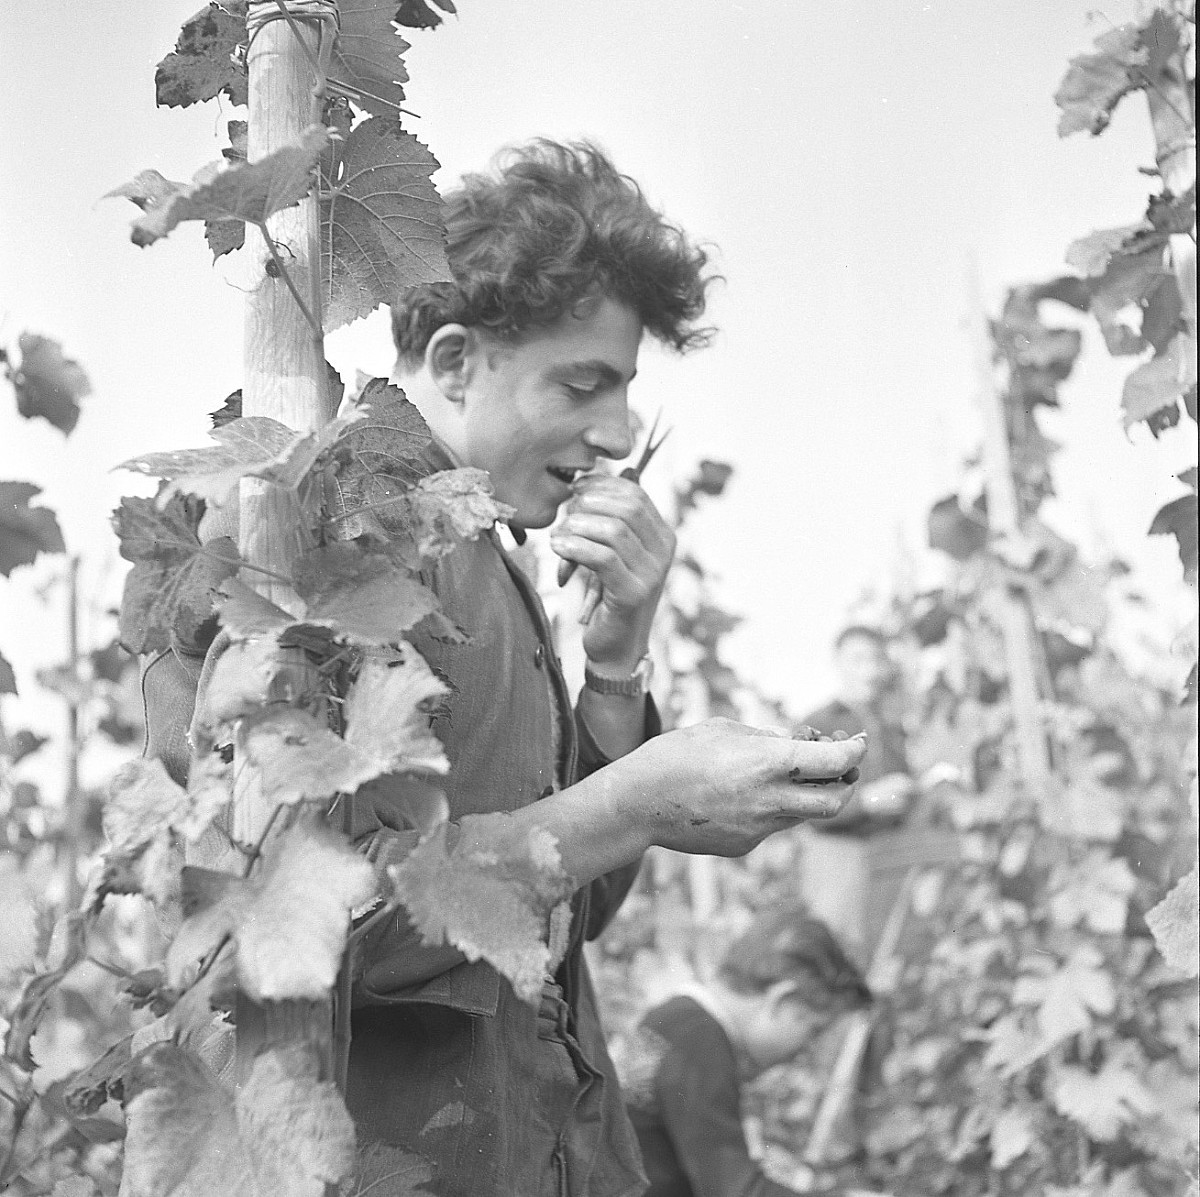 GFA 17/510963.6: Grape harvest at the apprentices' home in Dachsen